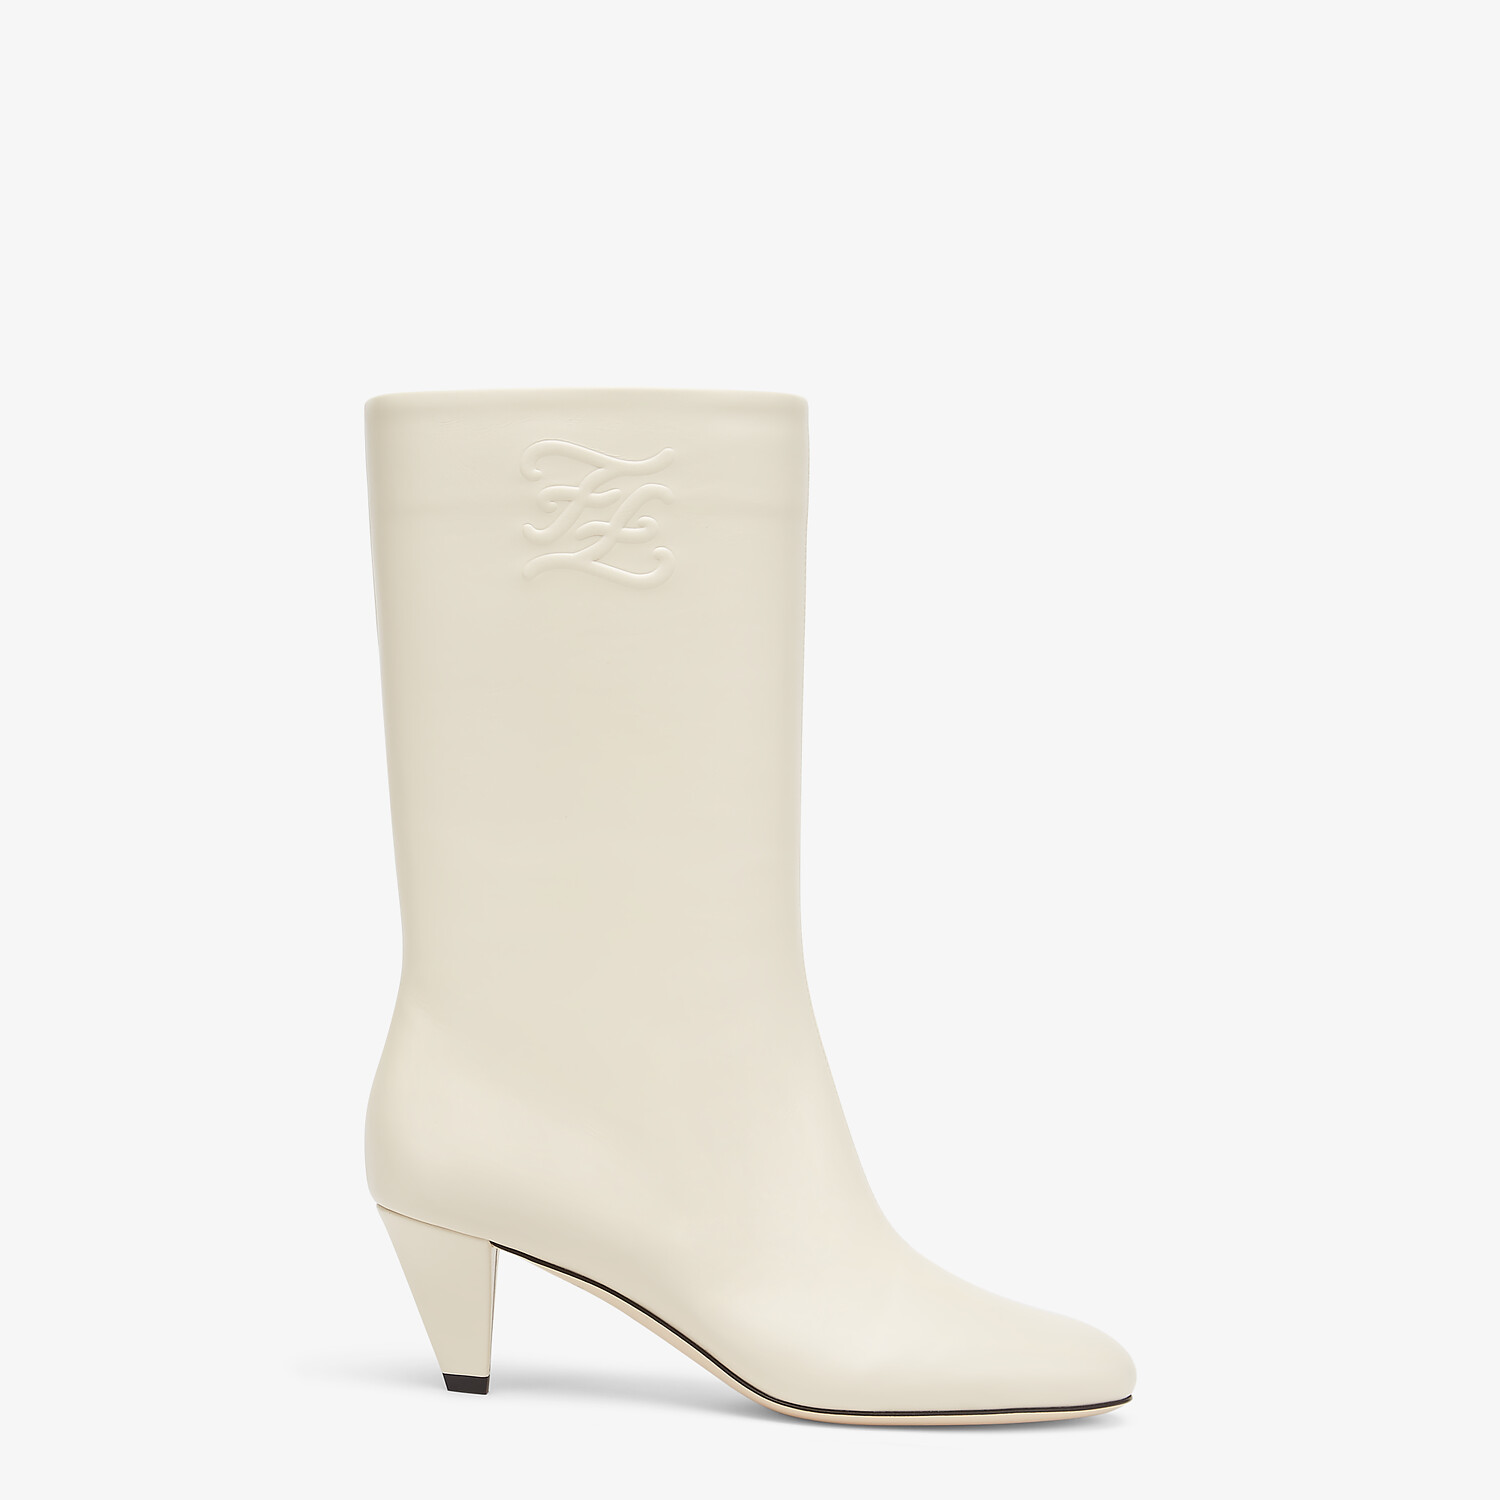 FENDI KARLIGRAPHY - White leather boots with medium heel - view 1 detail